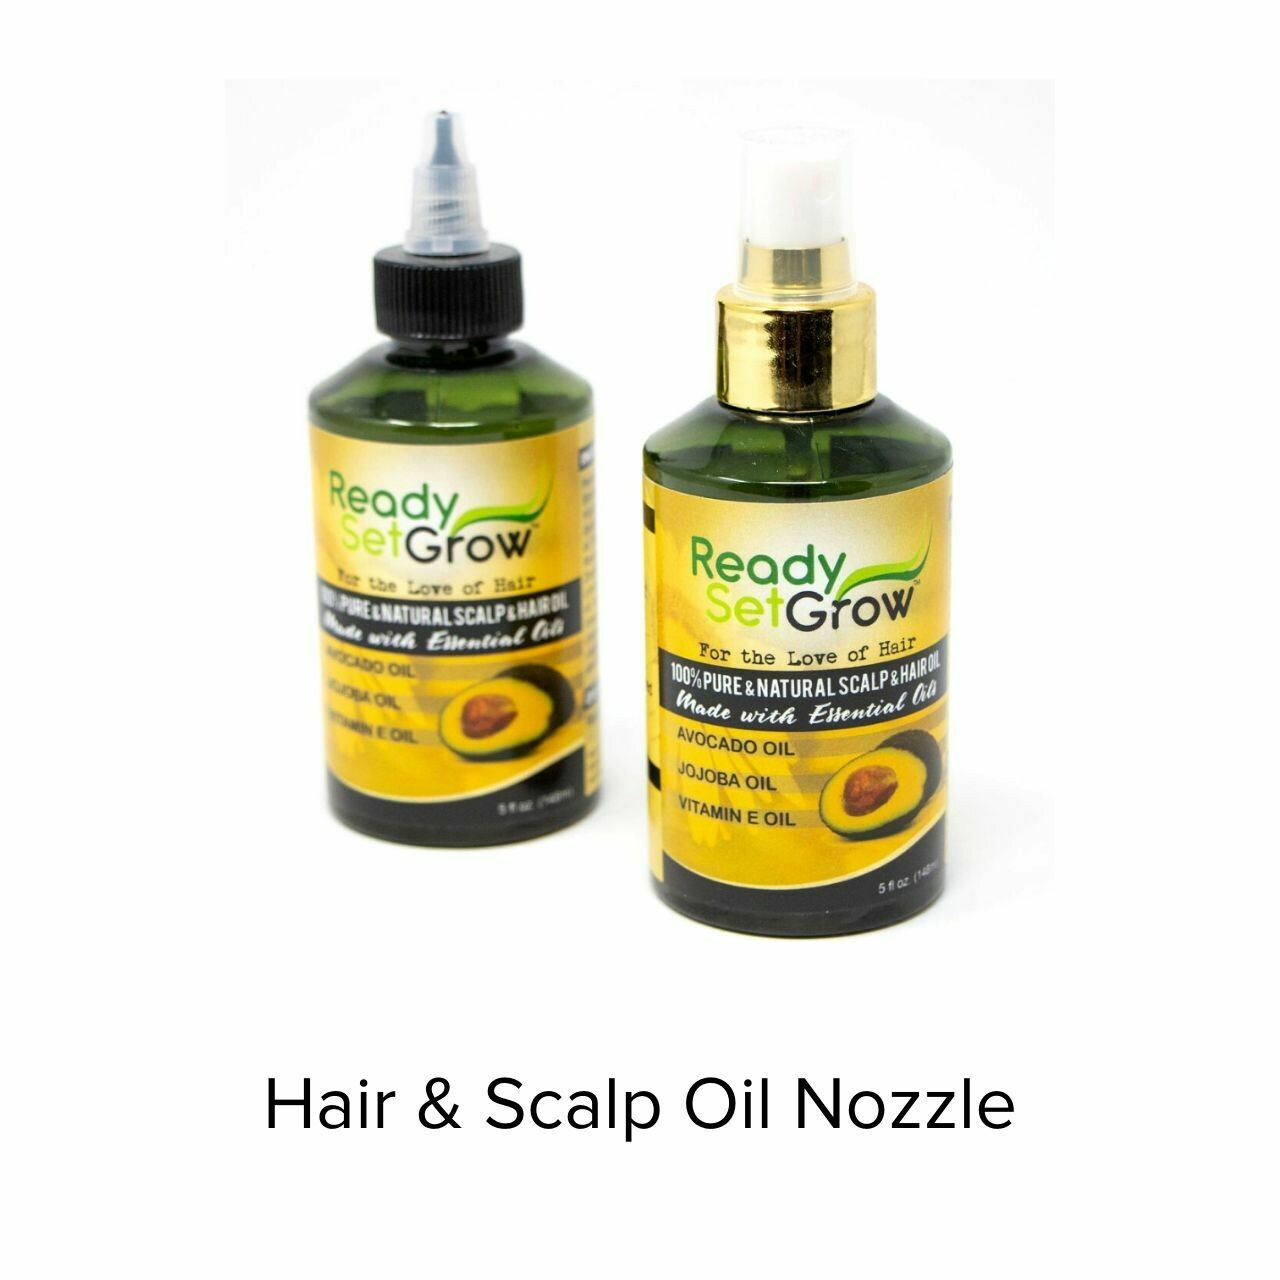 Ready Set Grow Avocado Oil Nozzle